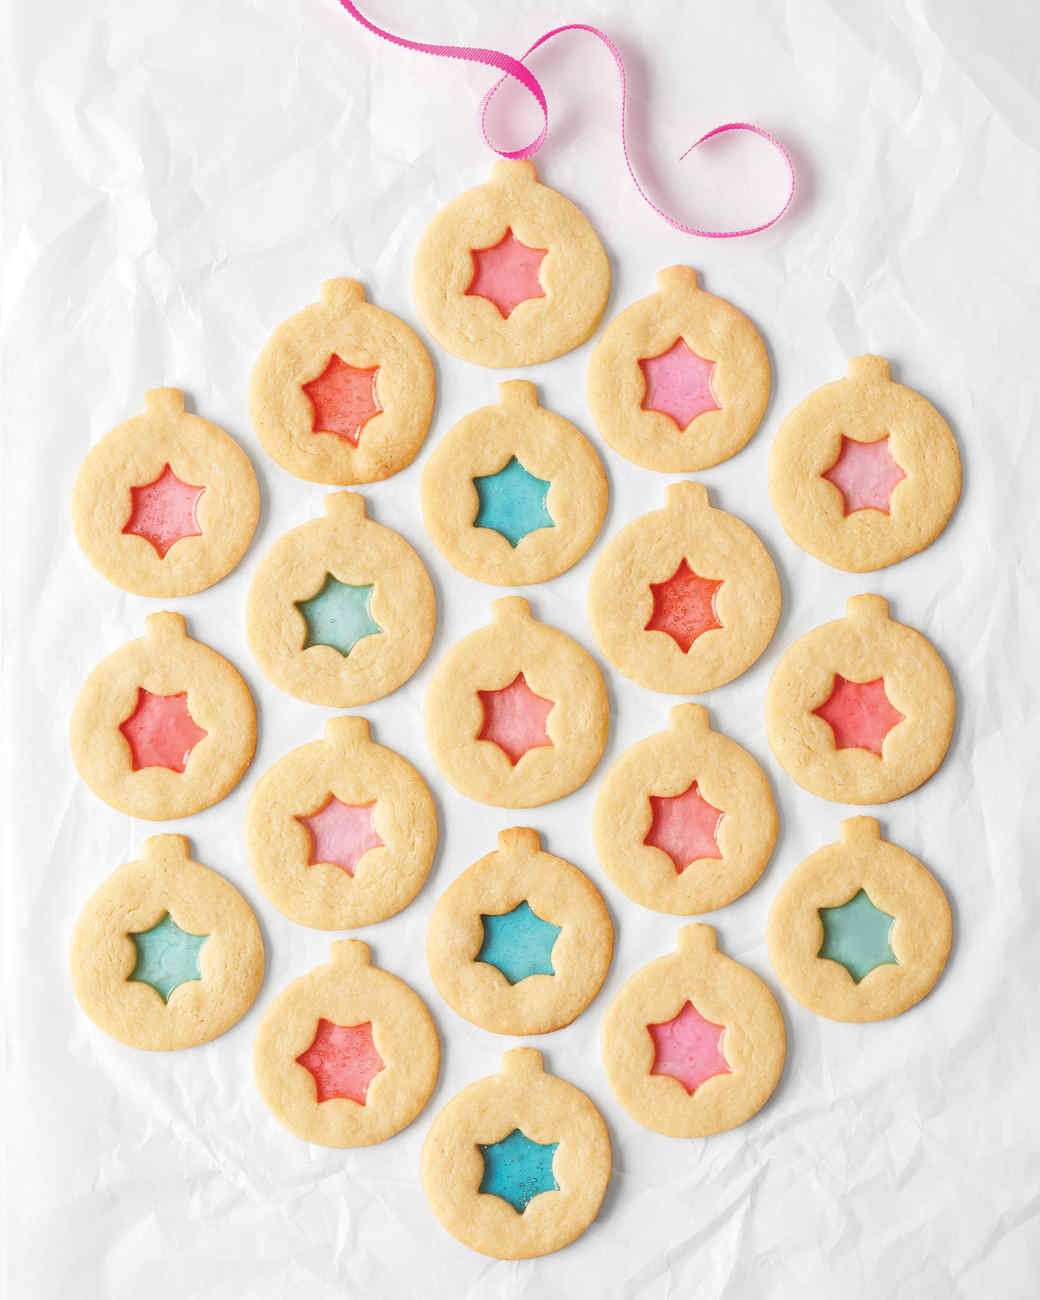 Stained glass sugar cookies recipe martha stewart for Stained glass cookie recipe